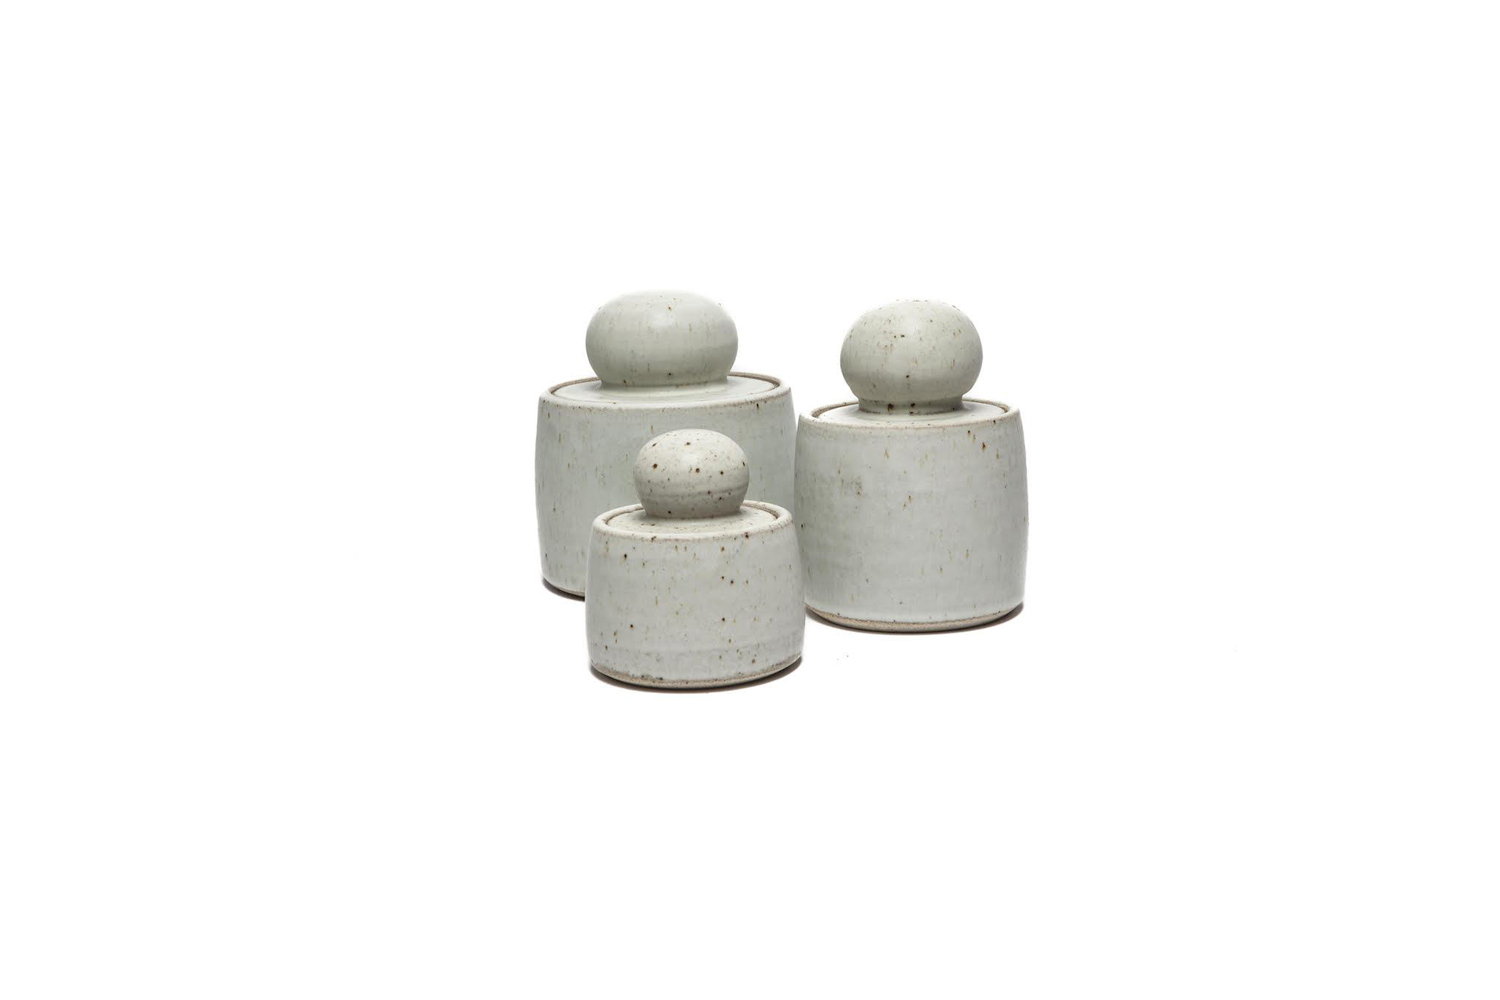 the ceramic stash pots are finished in a cream matte glaze with speckle detail; 21